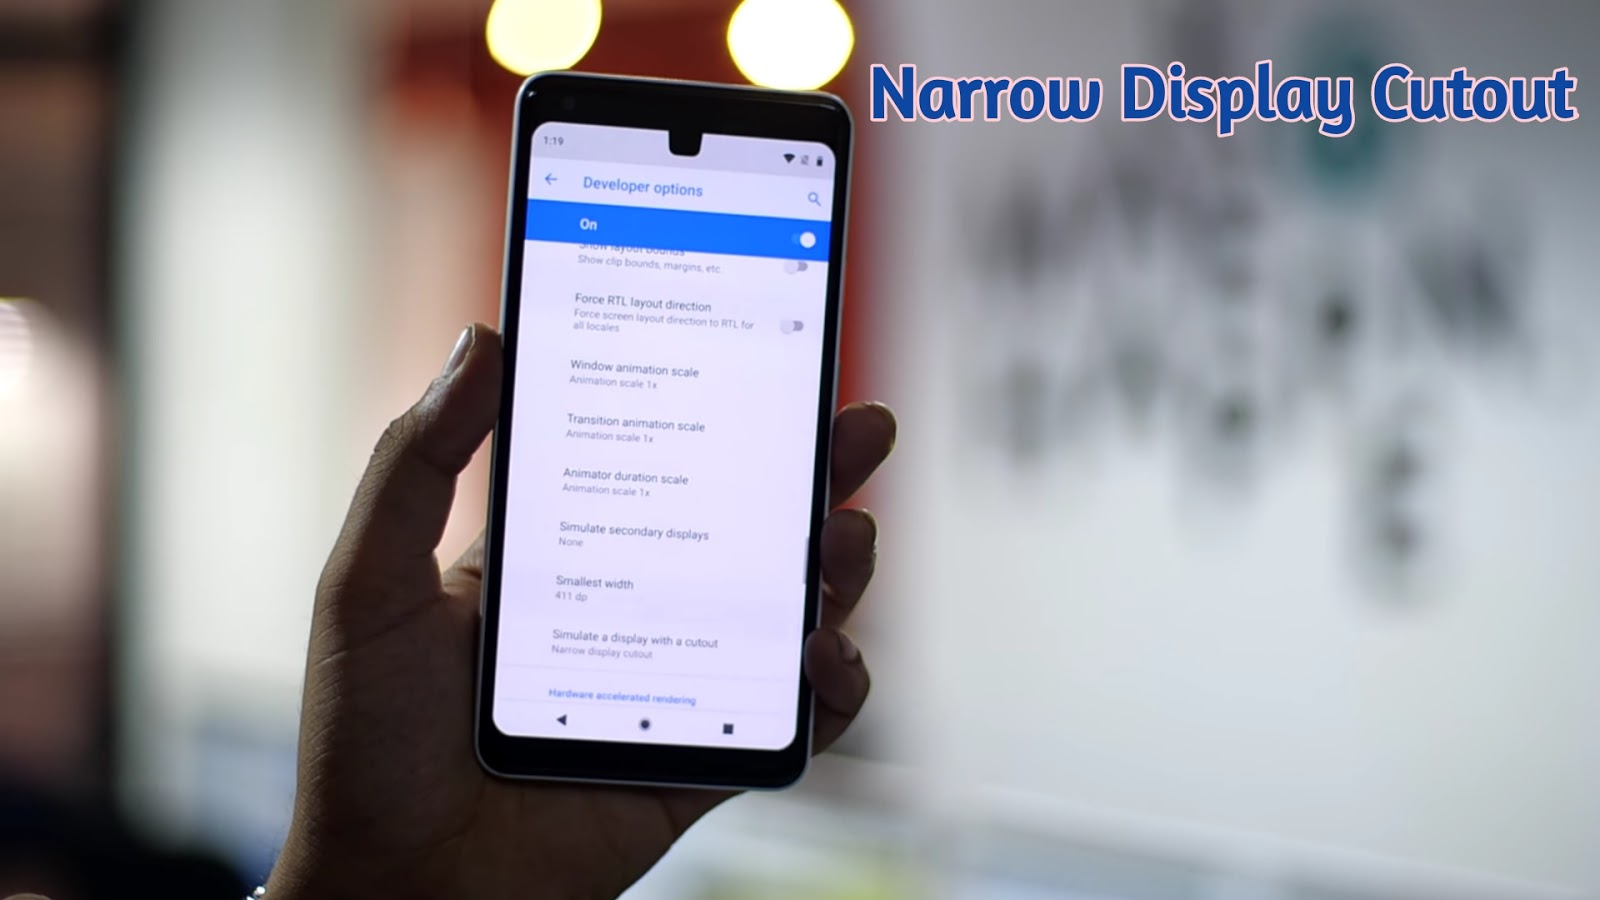 The narrow display cutout